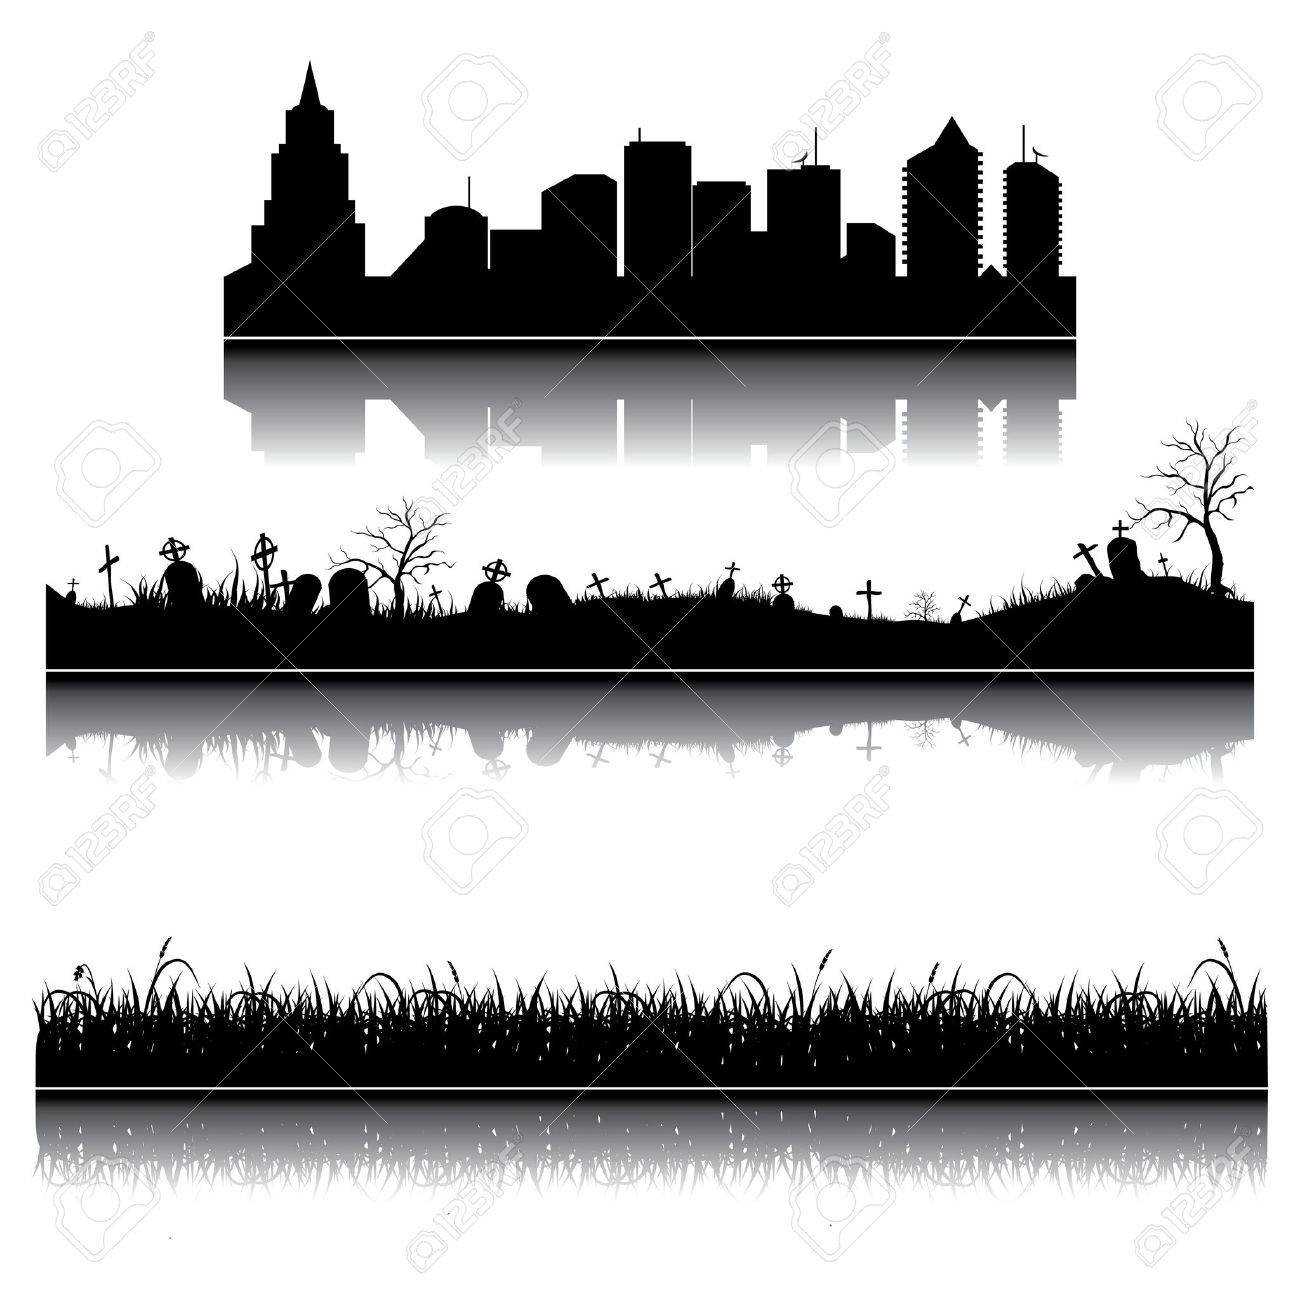 Set of city, grass and graveyard silhouettes - 15234634